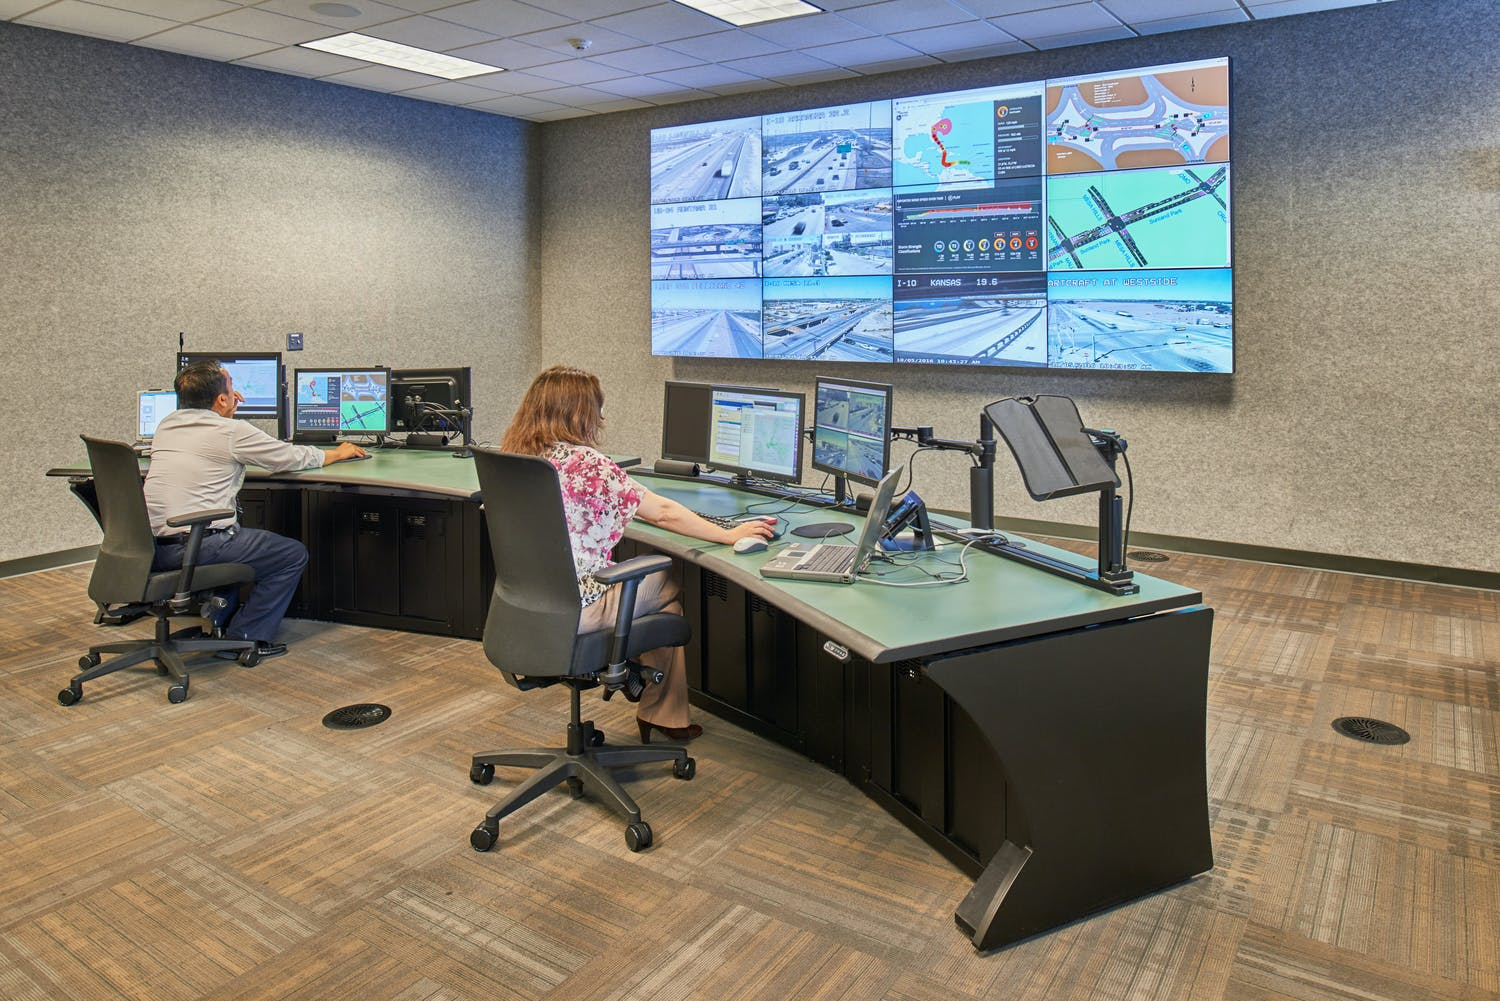 Walter P. Moore and Associates and Parkhill Awarded for City of El Paso Traffic Management Center